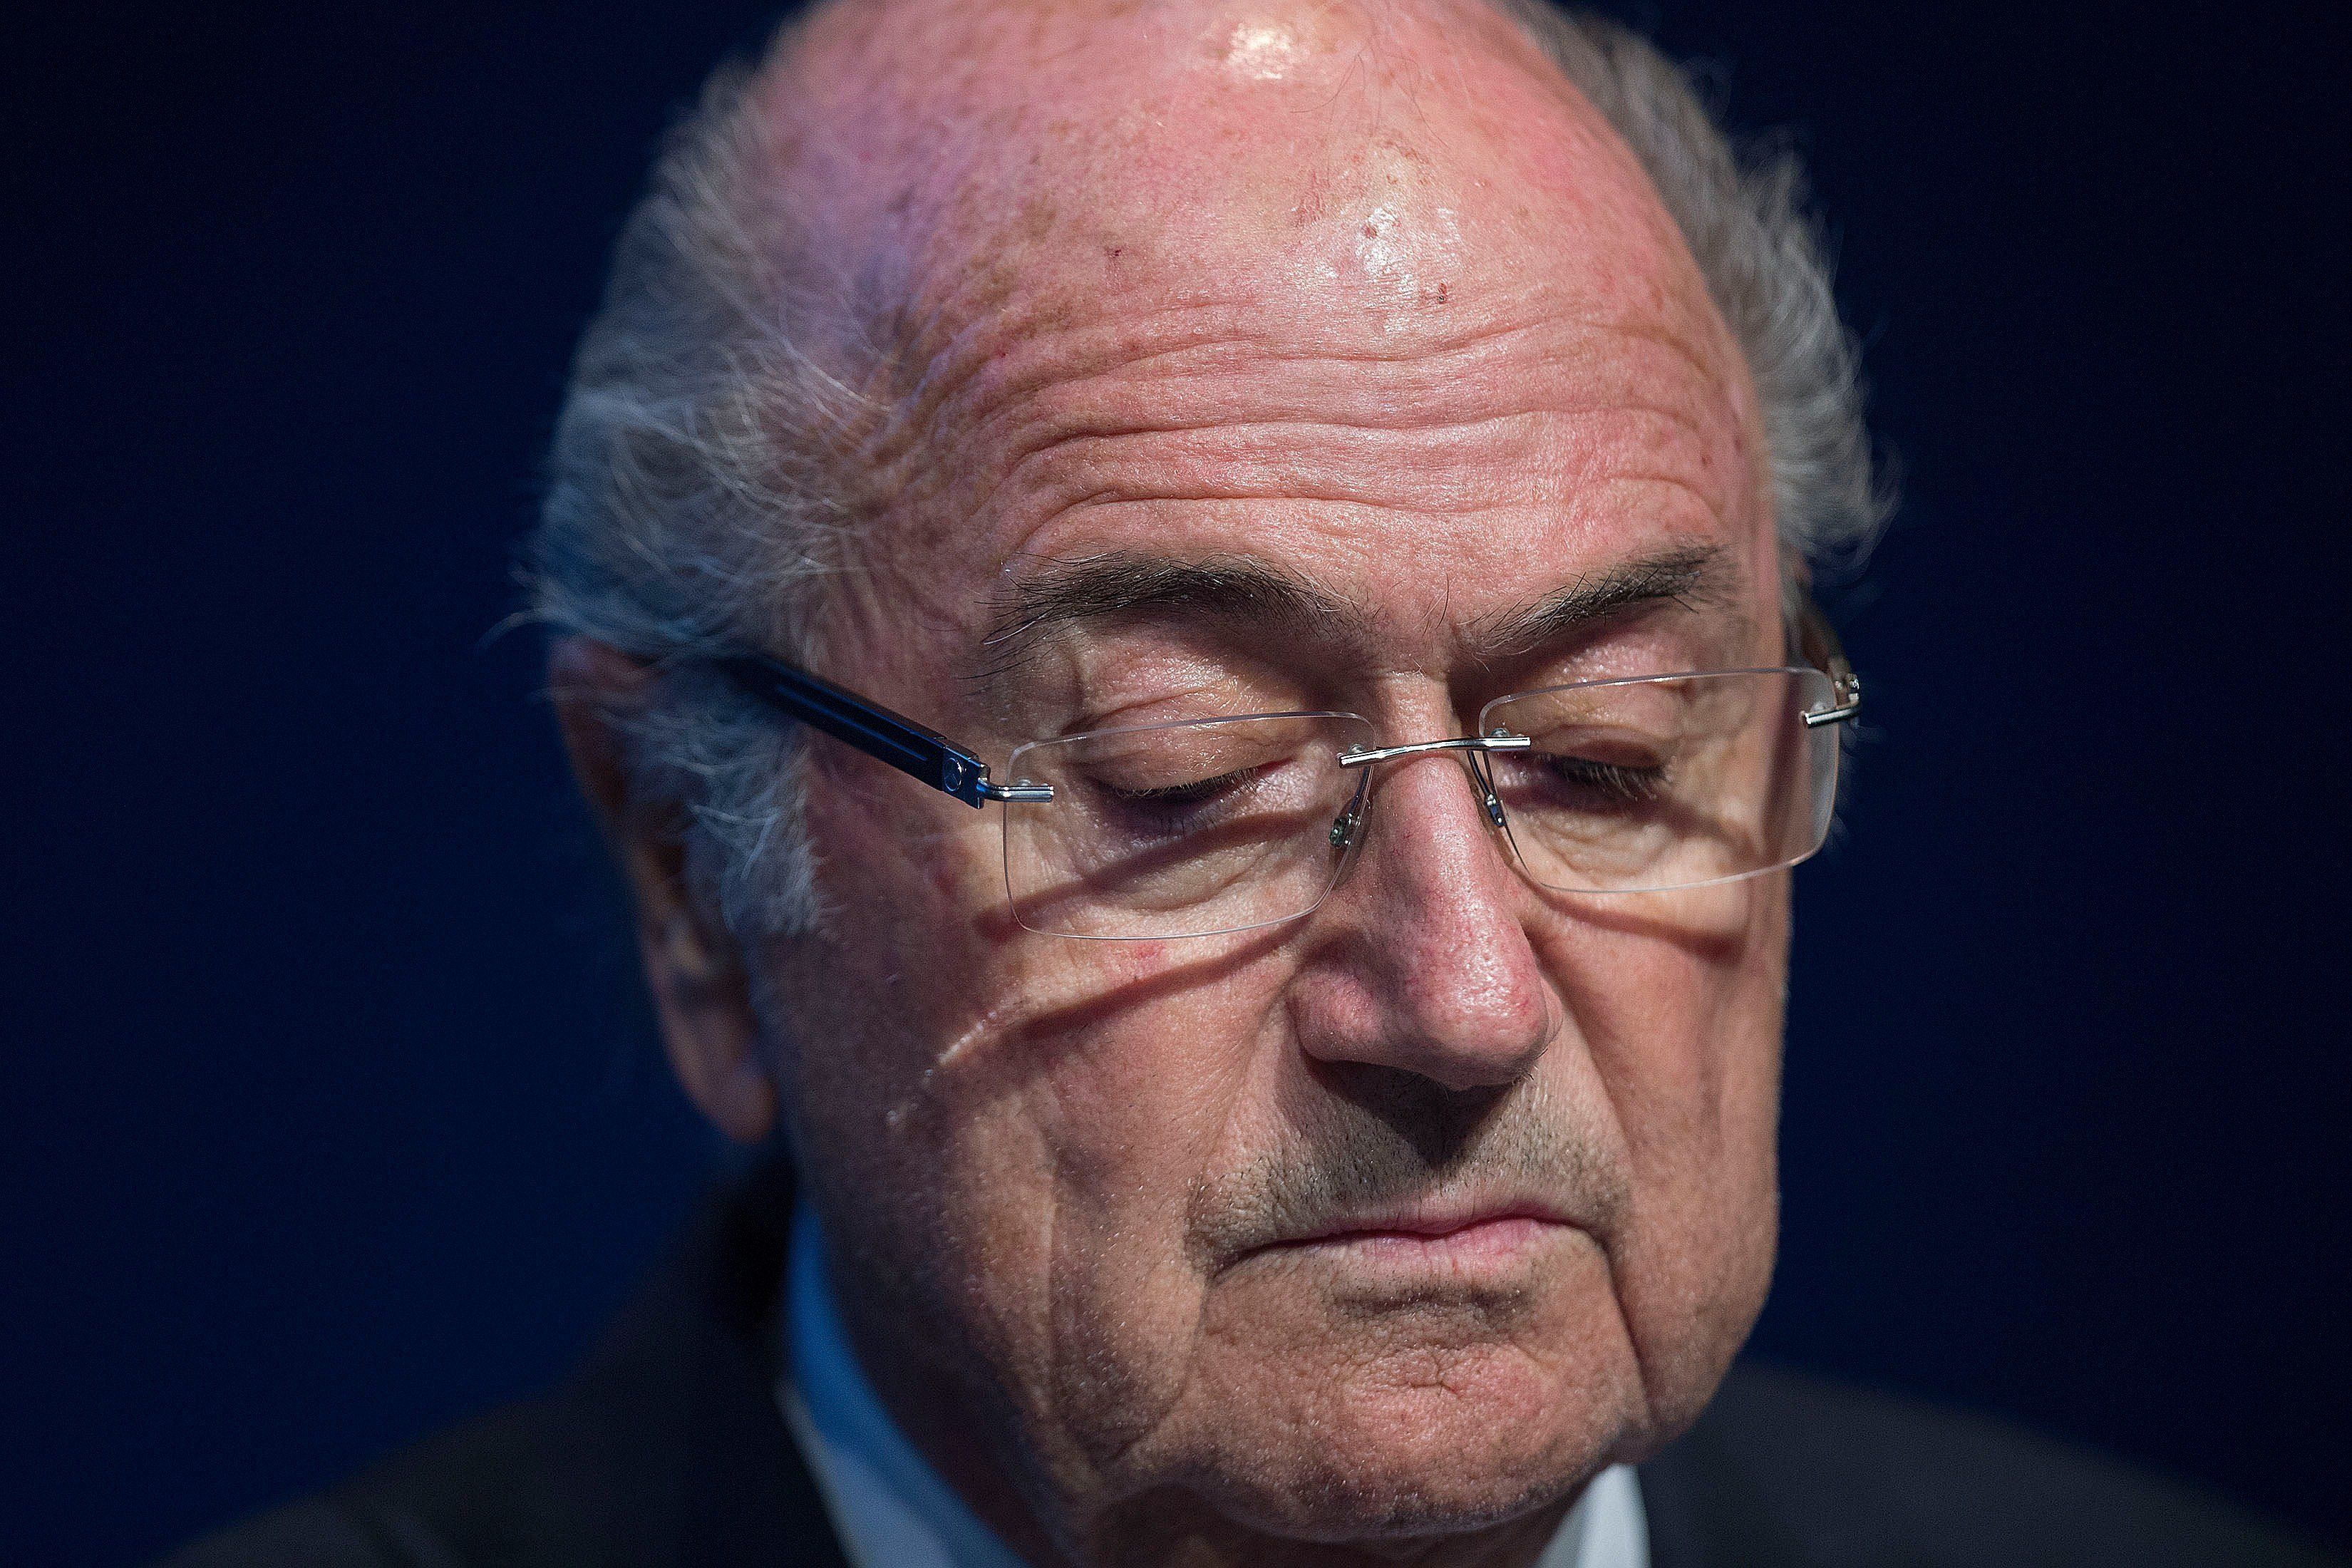 FIFA President Sepp Blatter looks down during a press conference at the headquarters of the world's football governing body in Zurich on June 2, 2015. Blatter resigned as president of FIFA as a mounting corruption scandal engulfed world football's governing body. The 79-year-old Swiss official, FIFA president for 17 years and only reelected days ago, said a special congress would be called to elect a successor. AFP PHOTO / VALERIANO DI DOMENICO        (Photo credit should read VALERIANO DI DOMENICO/AFP/Getty Images)